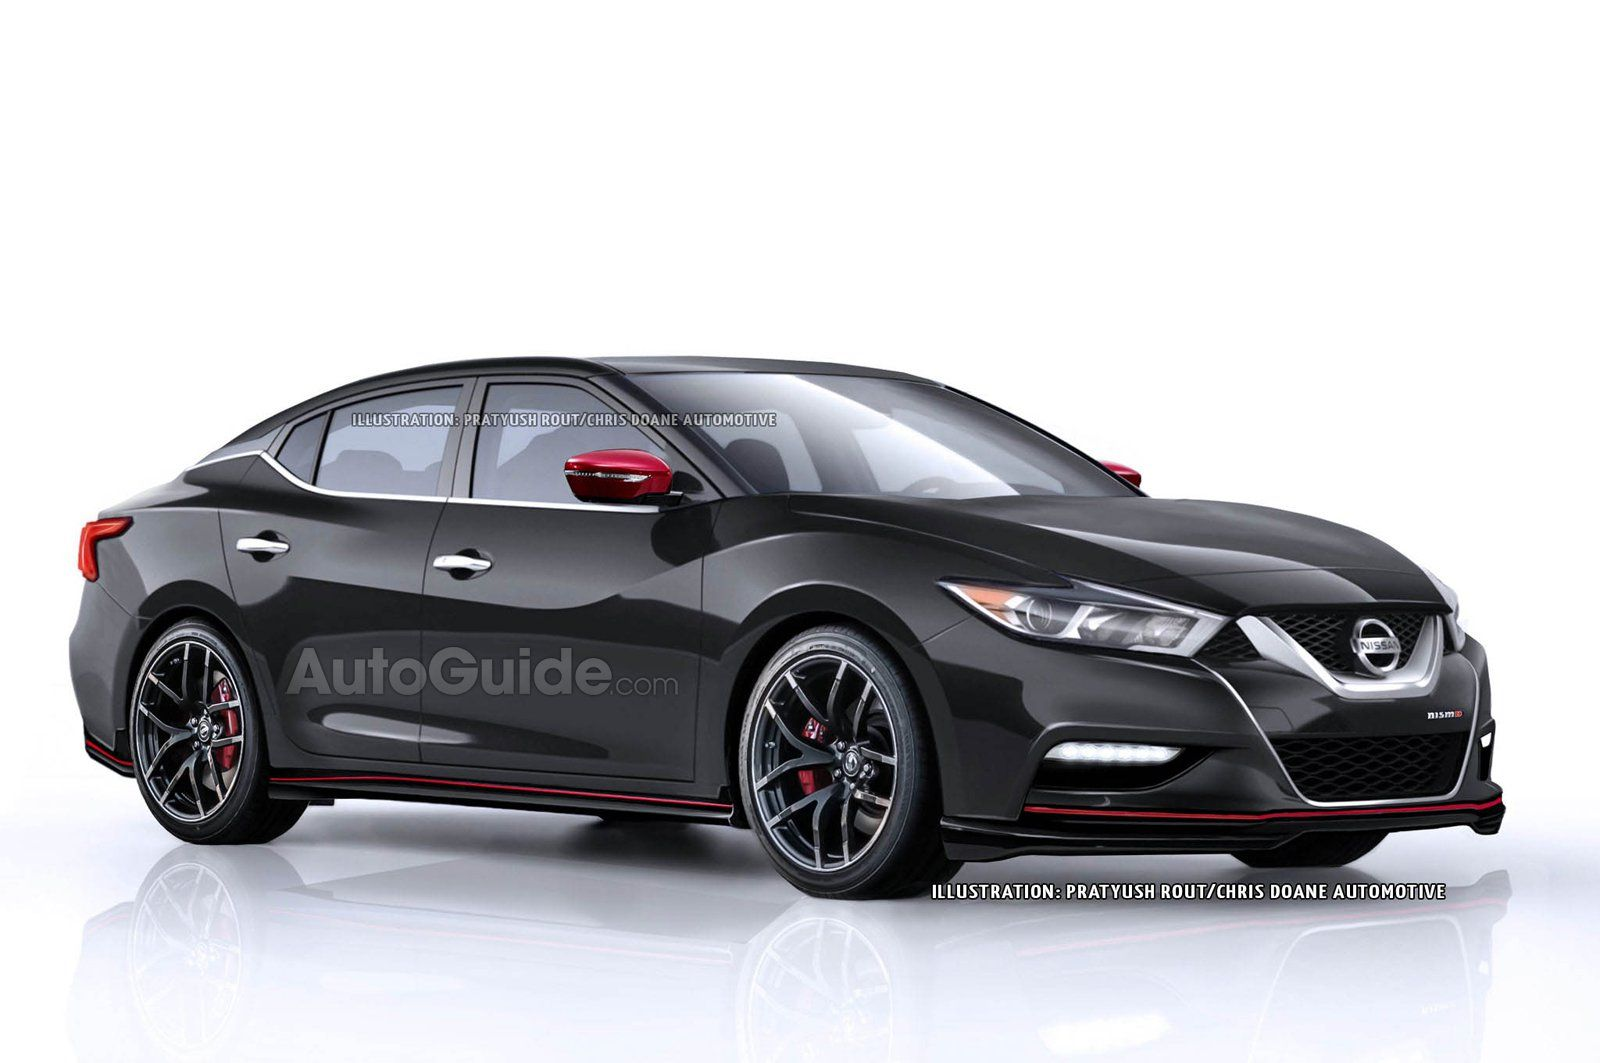 A New Nissan Nismo Vehicle Is Debuting Next Month Autoguide Com News Nissan Maxima Nissan Nismo Nissan